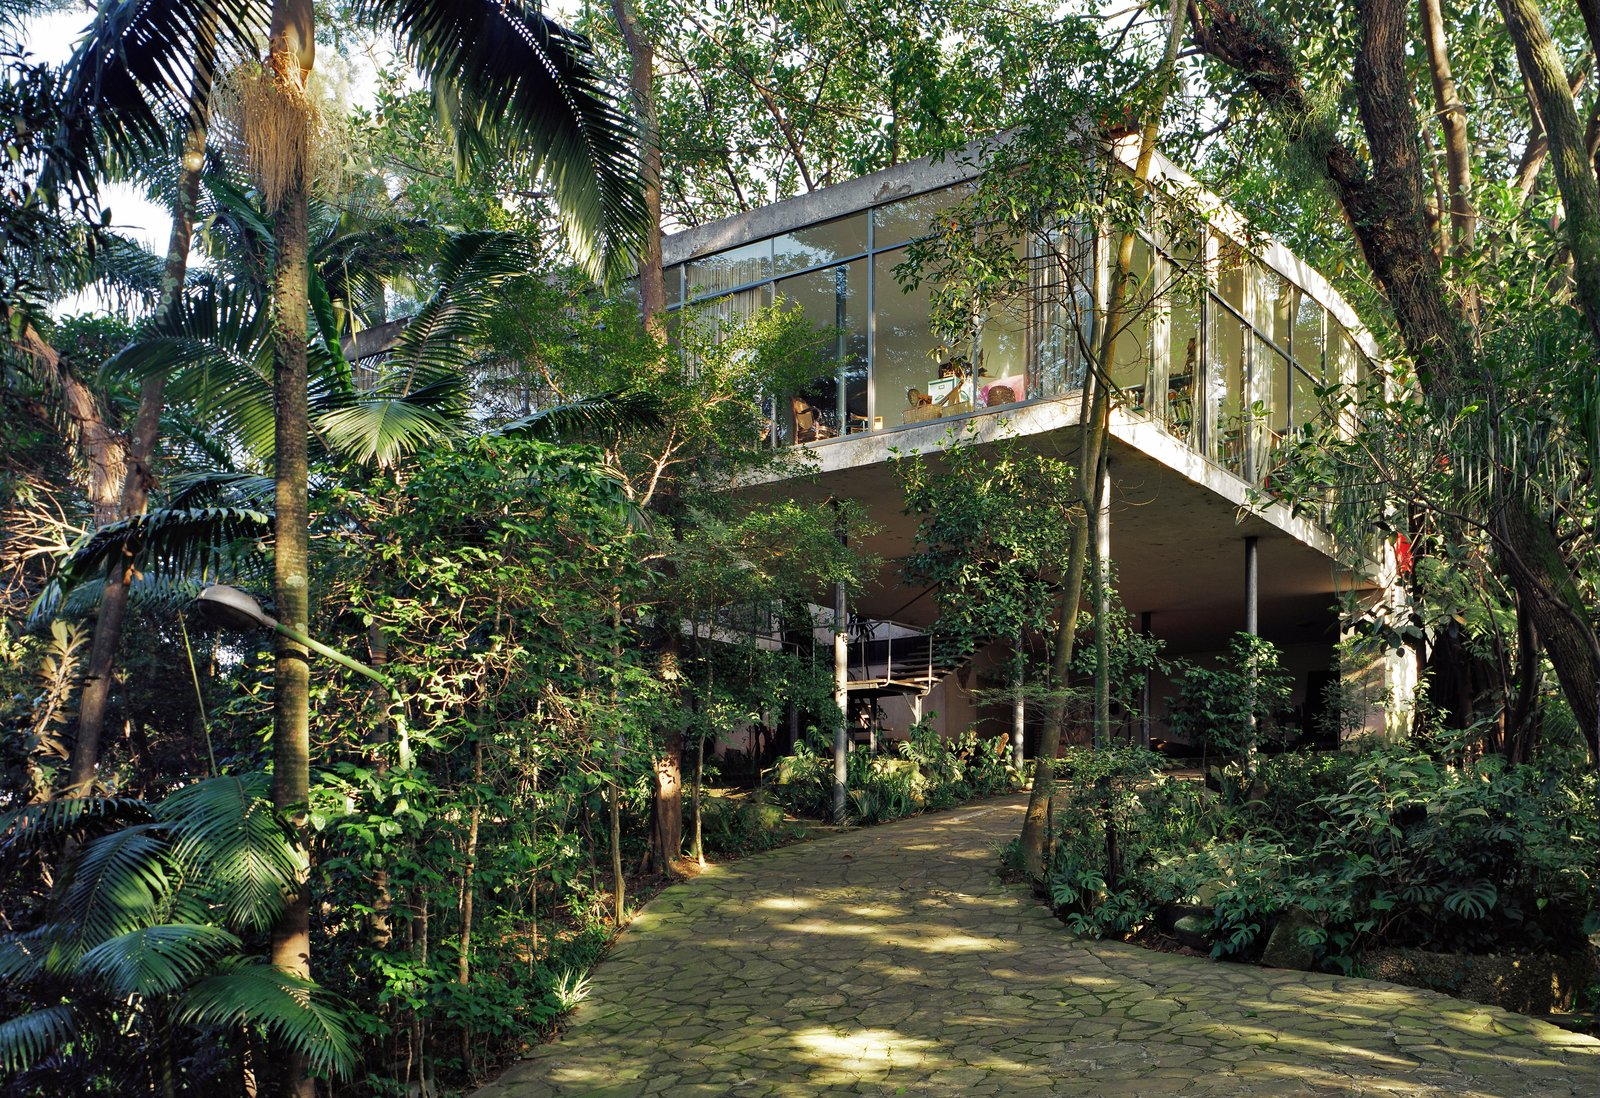 Outdoor and Trees Nestled in the jungle of São Paulo, Casa de Vidro (or Glass House) was the first built project by architect Lina Bo Bardi. Its glass volume stands on thin support columns that allow greenery to grow into the home.  Dwell's Favorite Outdoor Photos from Transformers of the Modern House: Albert Frey and Lina Bo Bardi at the Palm Springs Art Museum